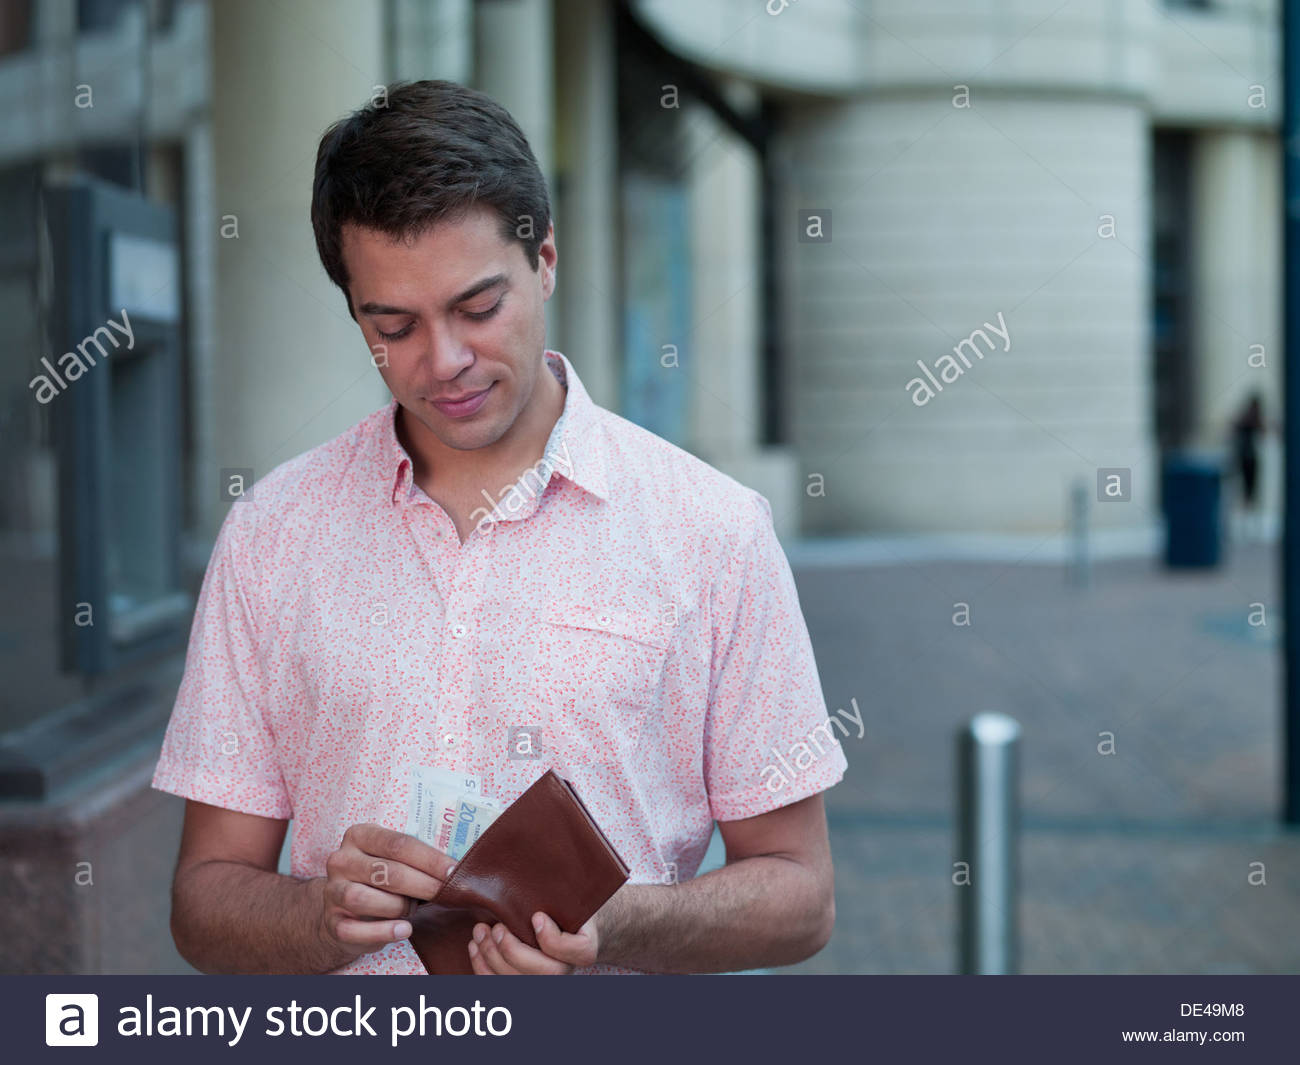 Man holding pocket near ATM machine - Stock Image